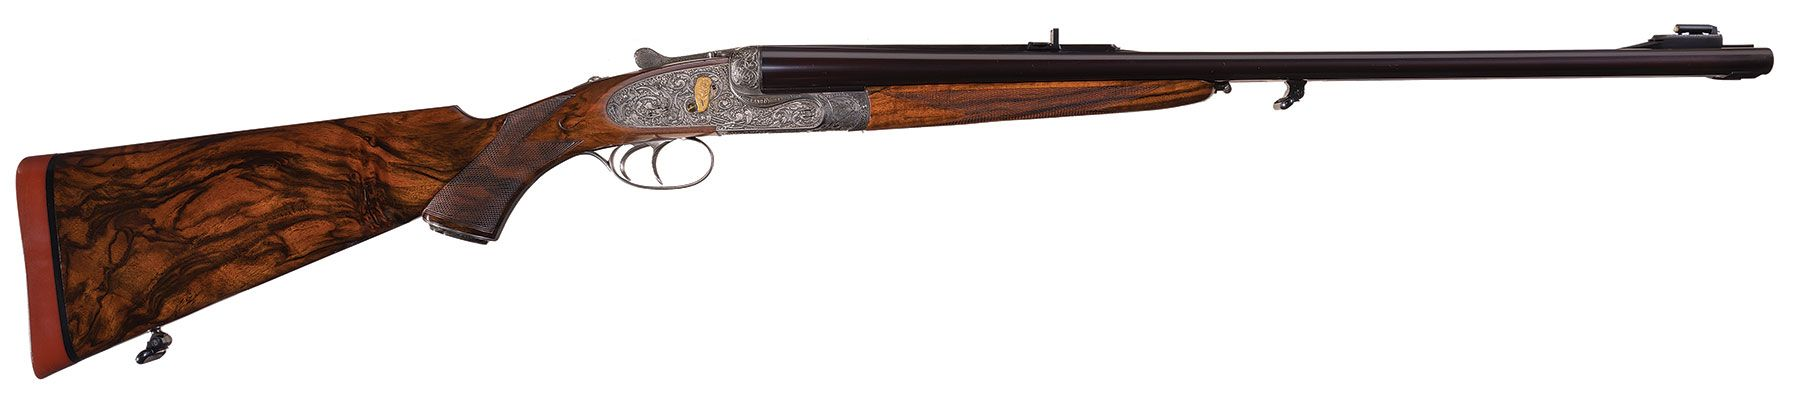 Holland & Holland 500/465 Nitro Express Double Rifle